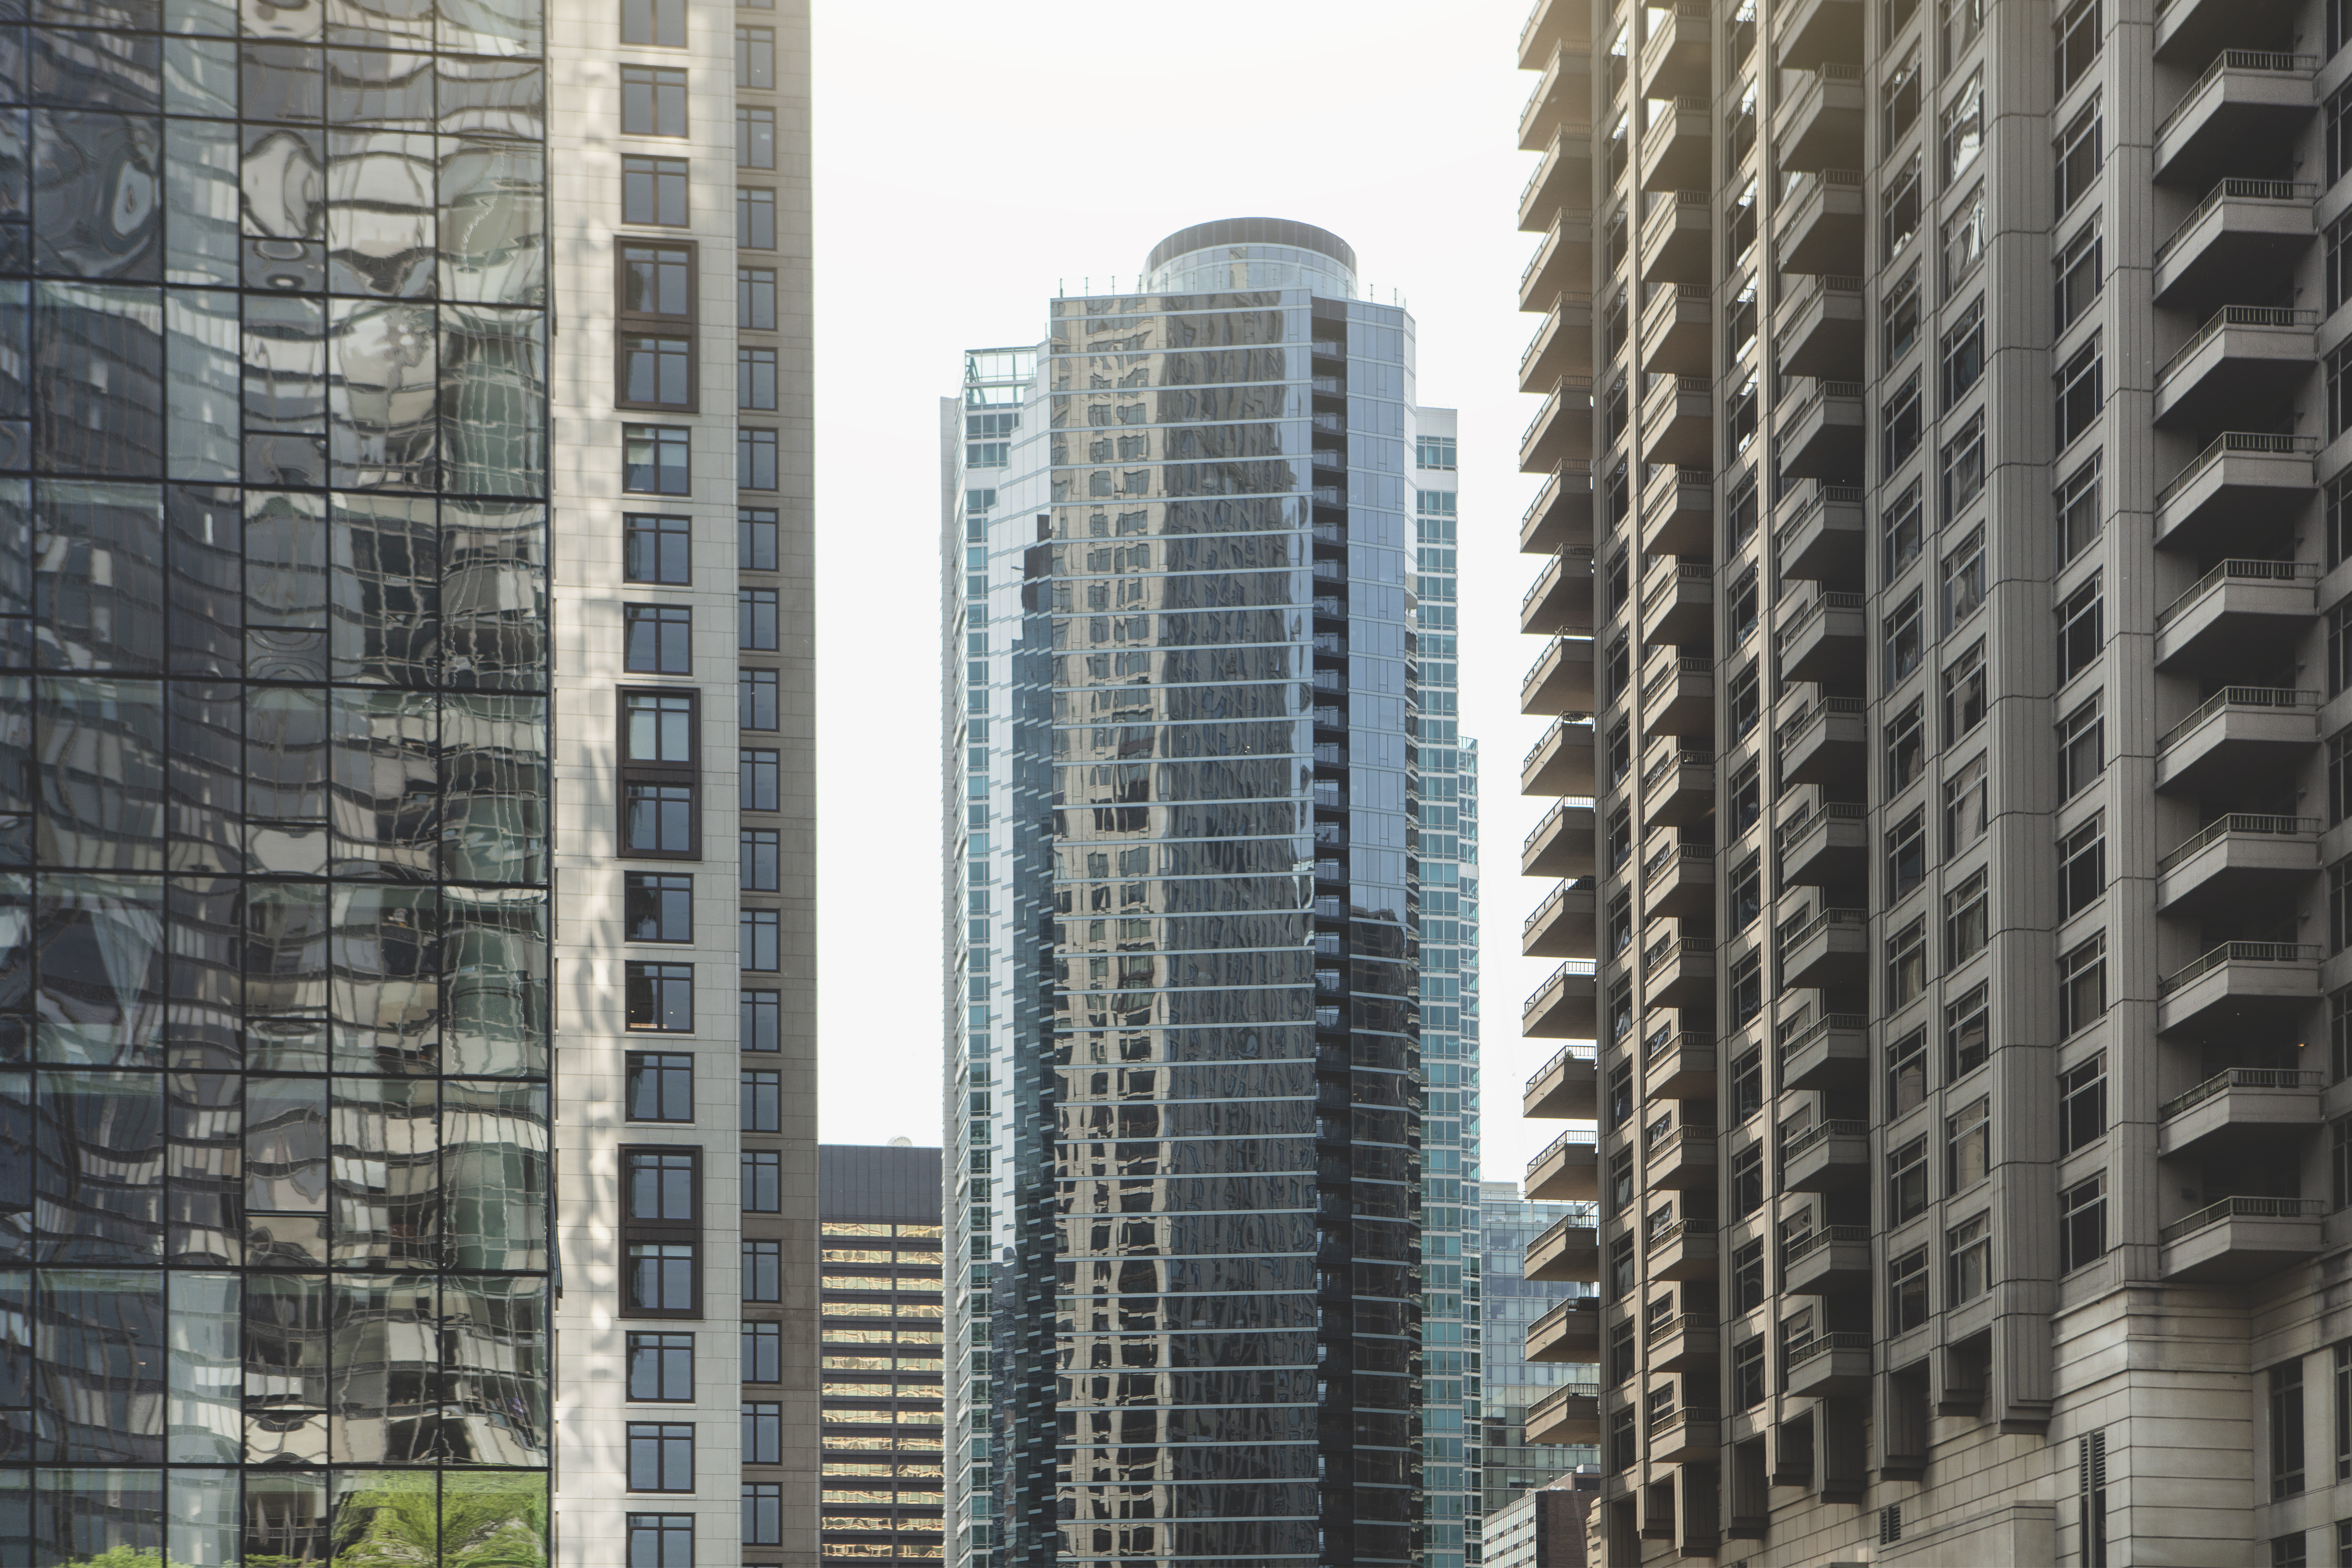 A group of tall skyscrapers in Chicago.